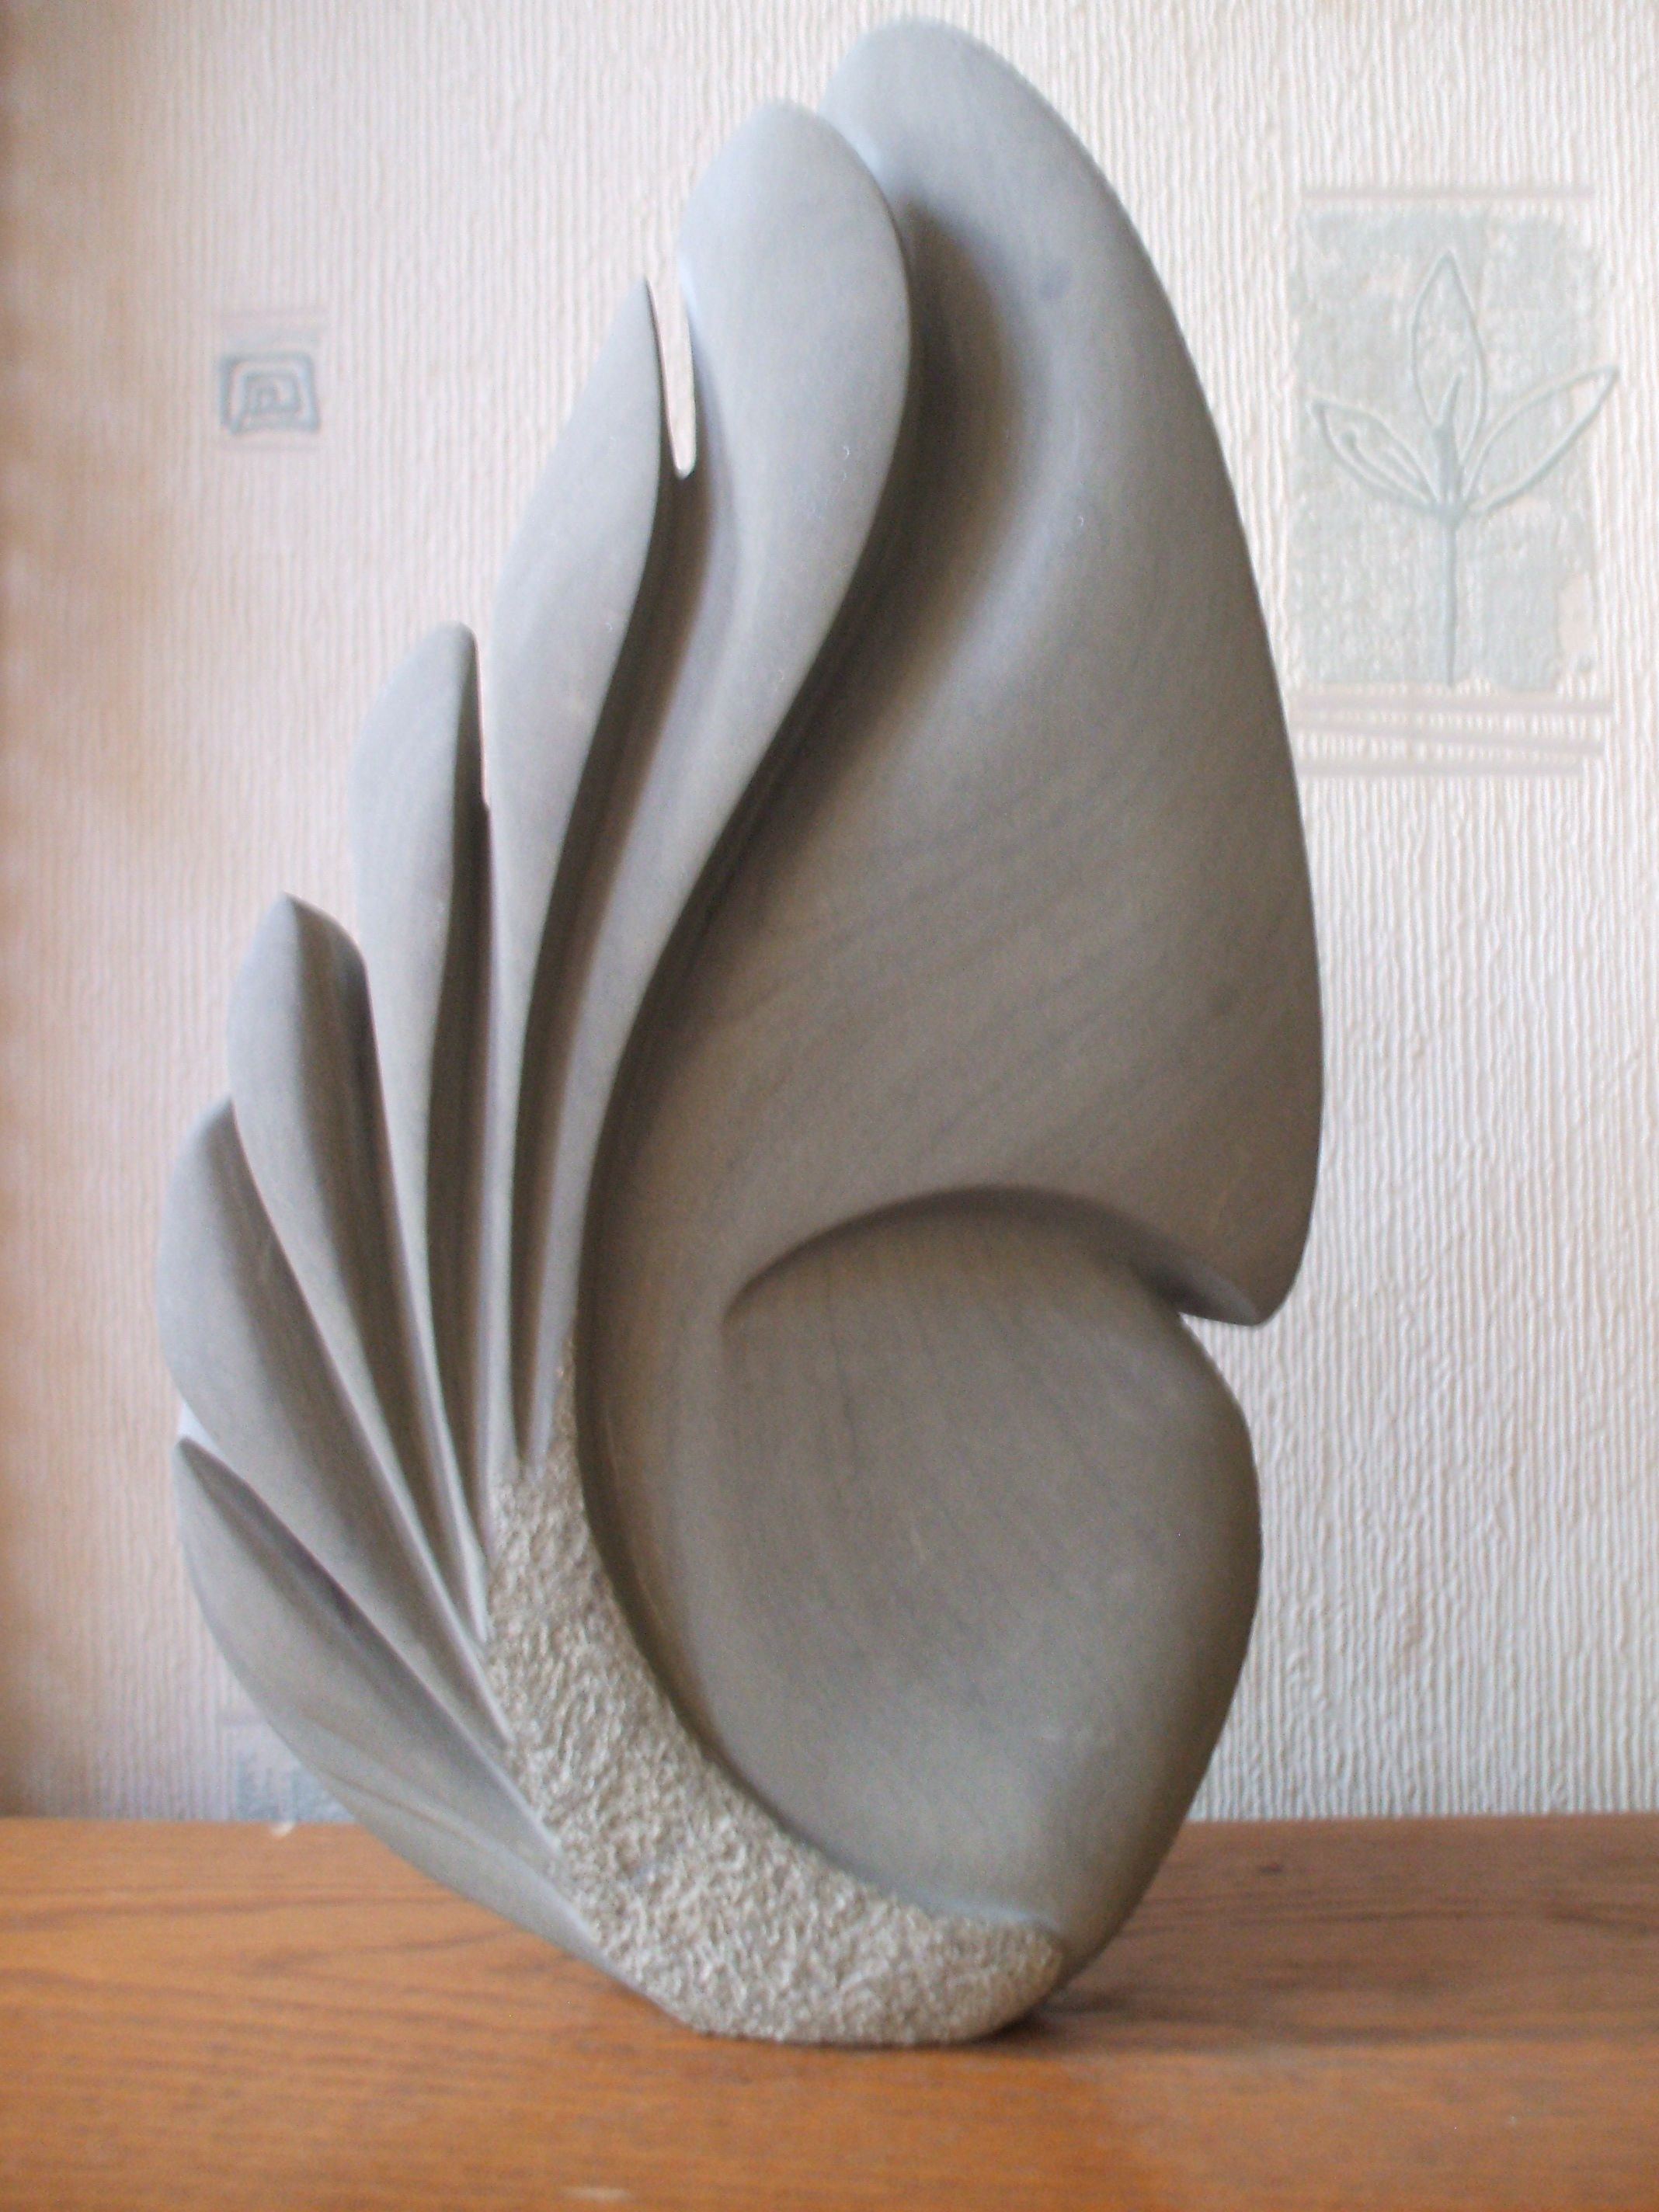 Sculpture stone created by anthony s mottram sculpture